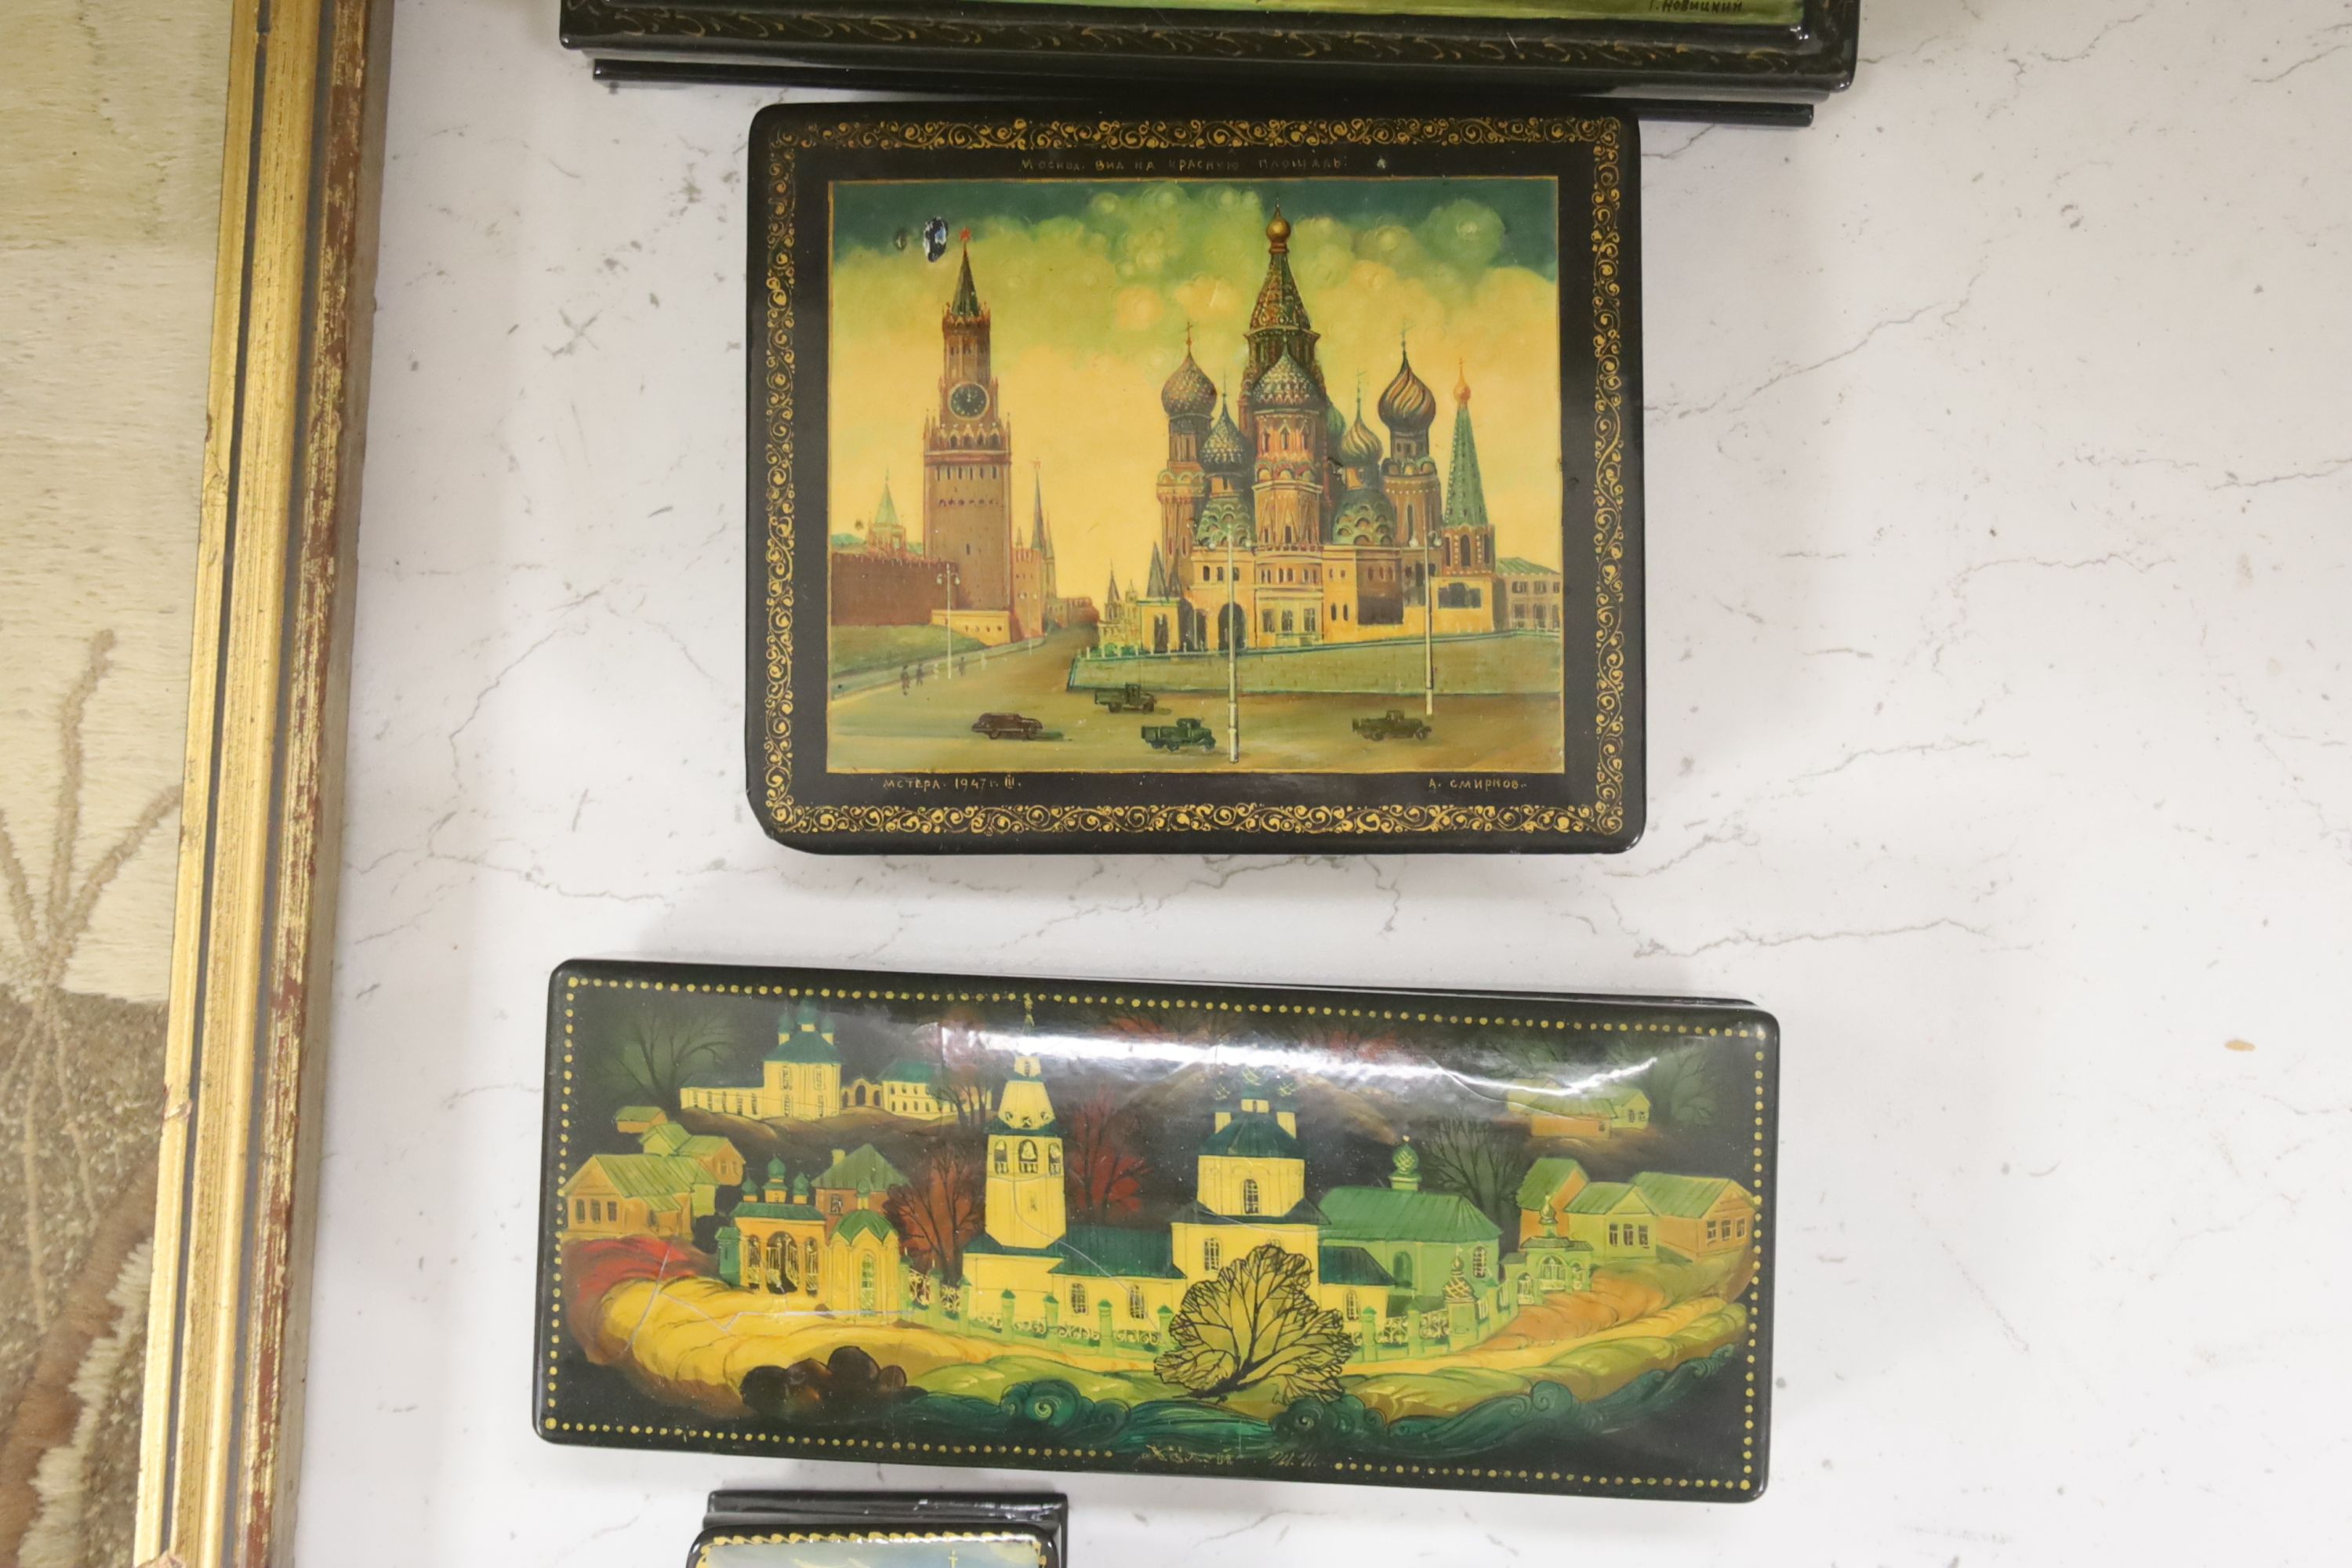 Six Russian Papier mache boxes, each decorated with churches or cathedrals, largest 17 cm - Image 3 of 6